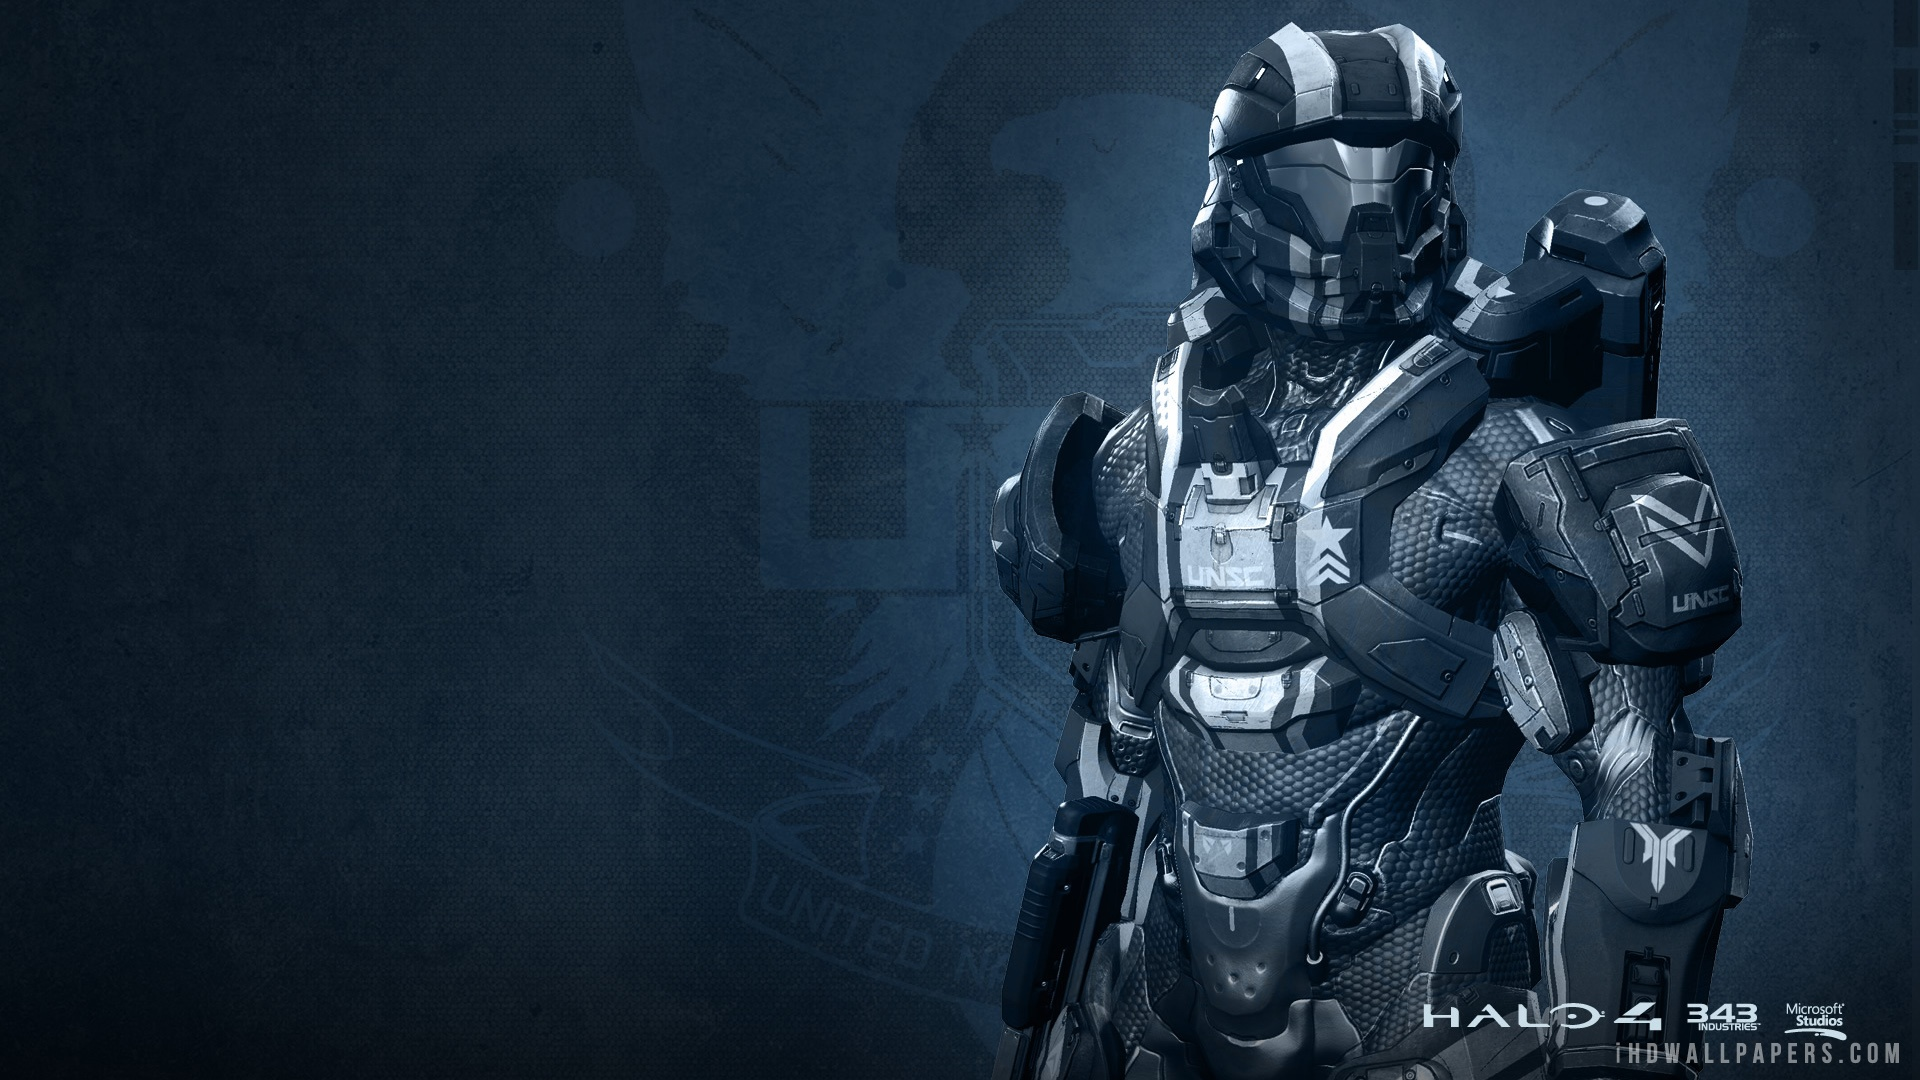 Halo 5 free hd wallpapers download - Halo 4 pictures ...